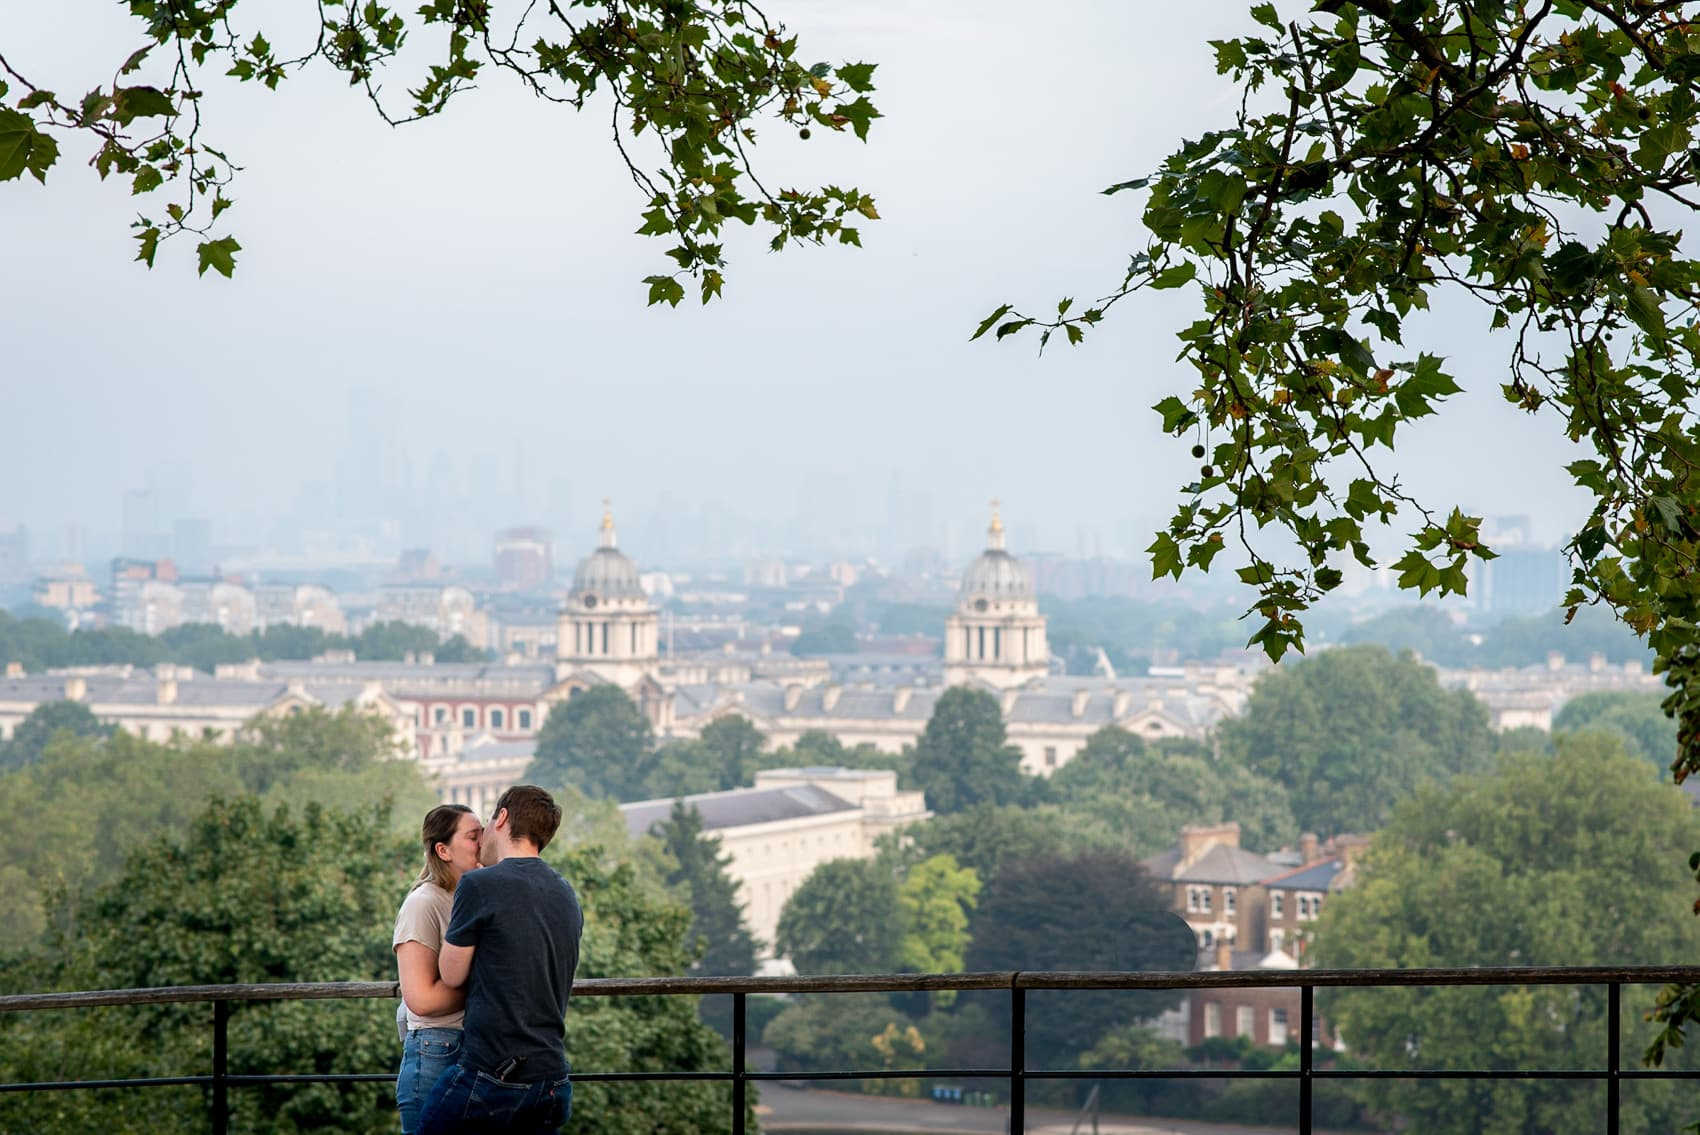 Engaged couple kissing in Greenwich park, over looking london